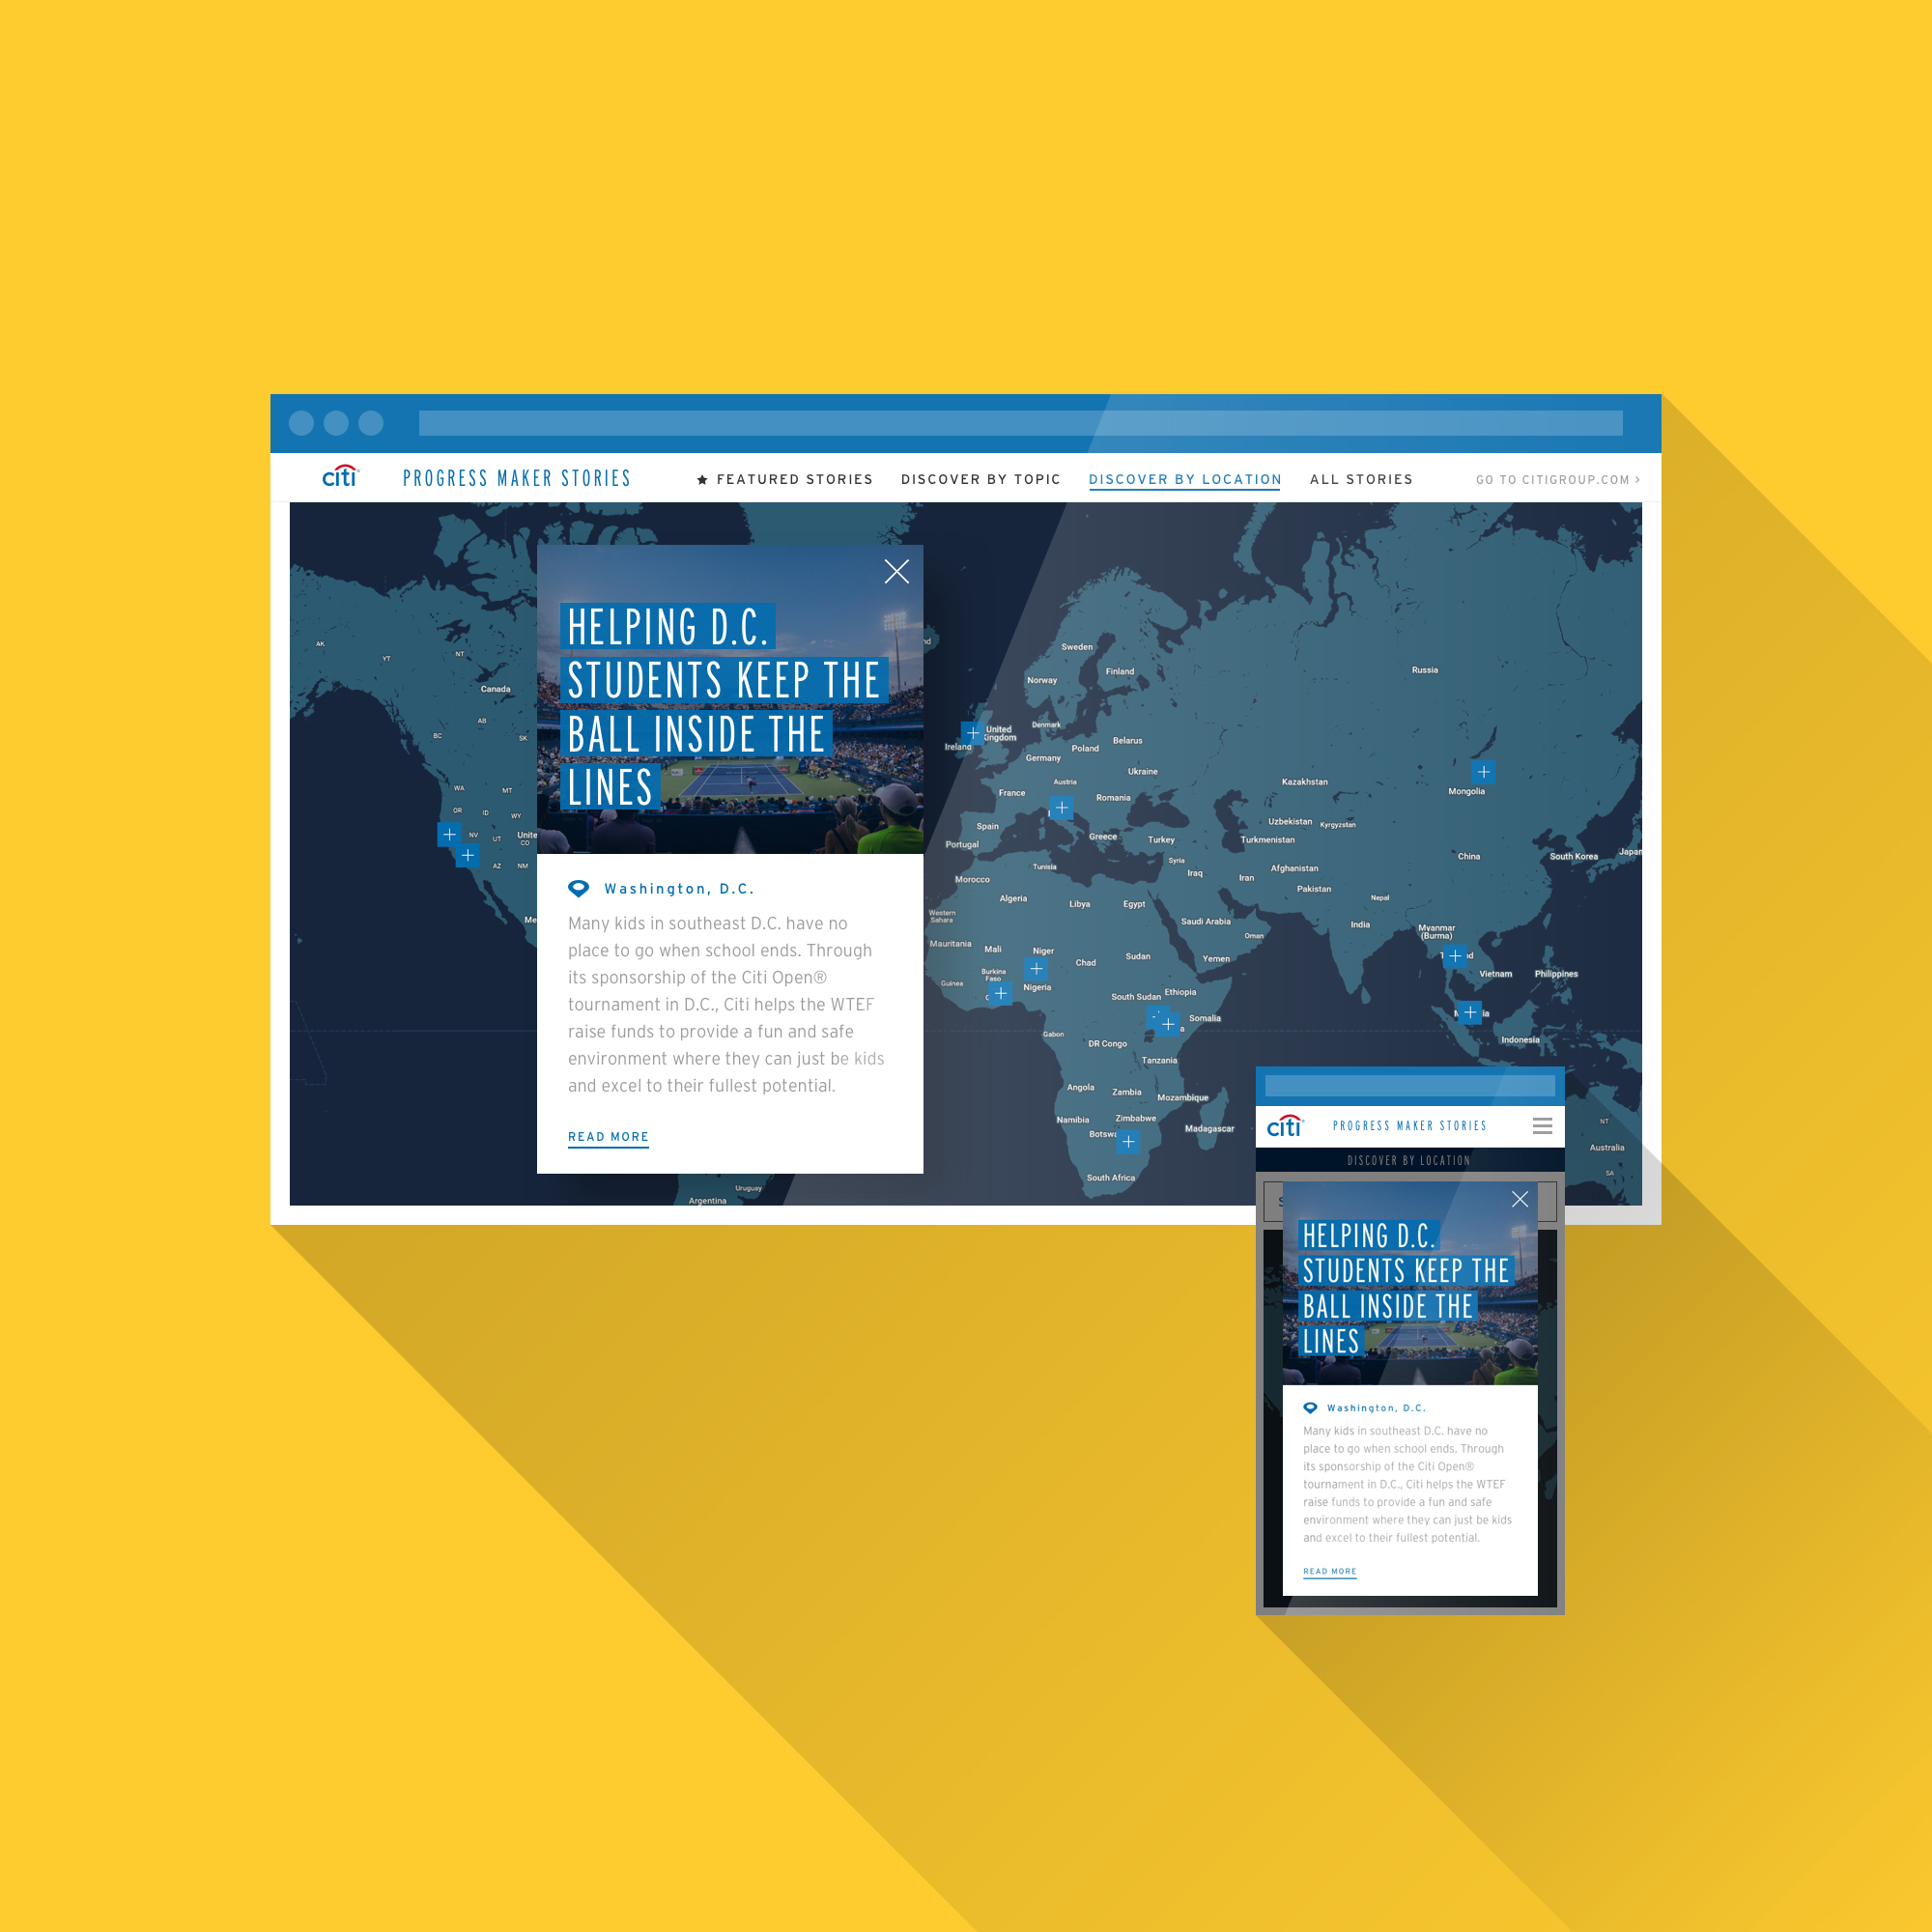 Discover By Location - Stories are also visualized geographically to inform users of the massive reach of Citi's Progress Maker Stories efforts across the globe.